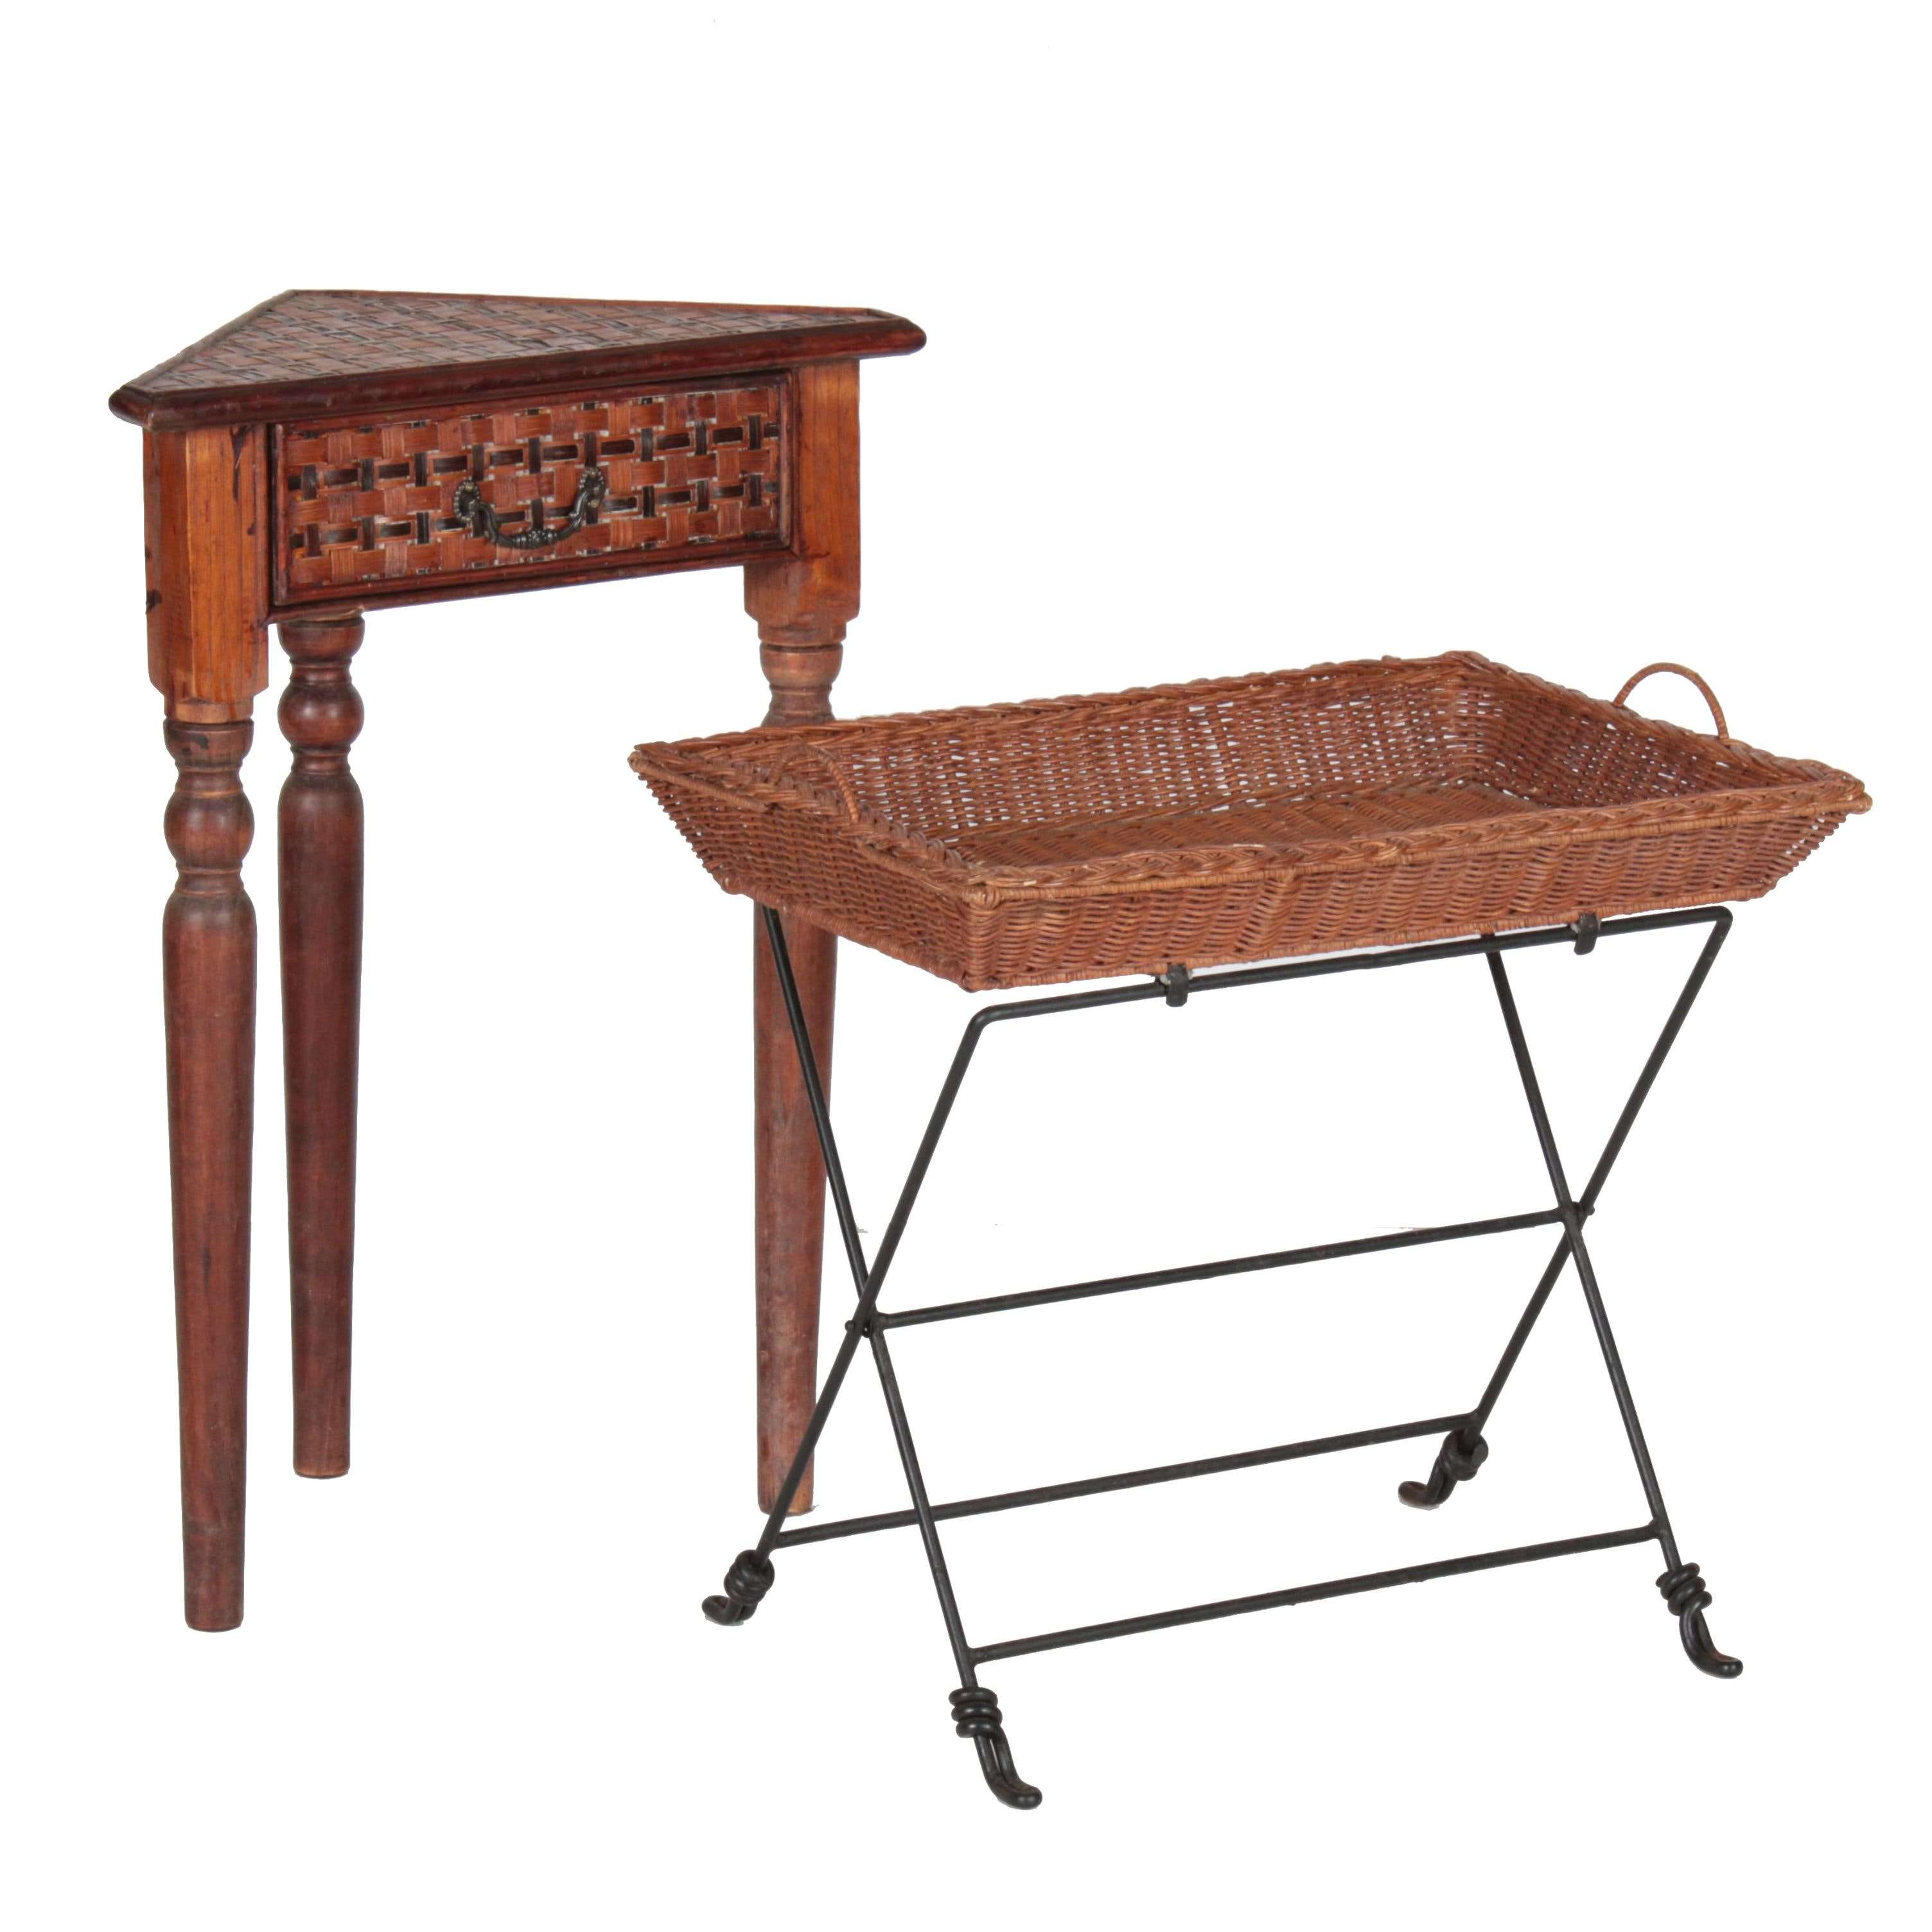 Wicker and Iron Folding Tray Table with One-Drawer Corner Stand